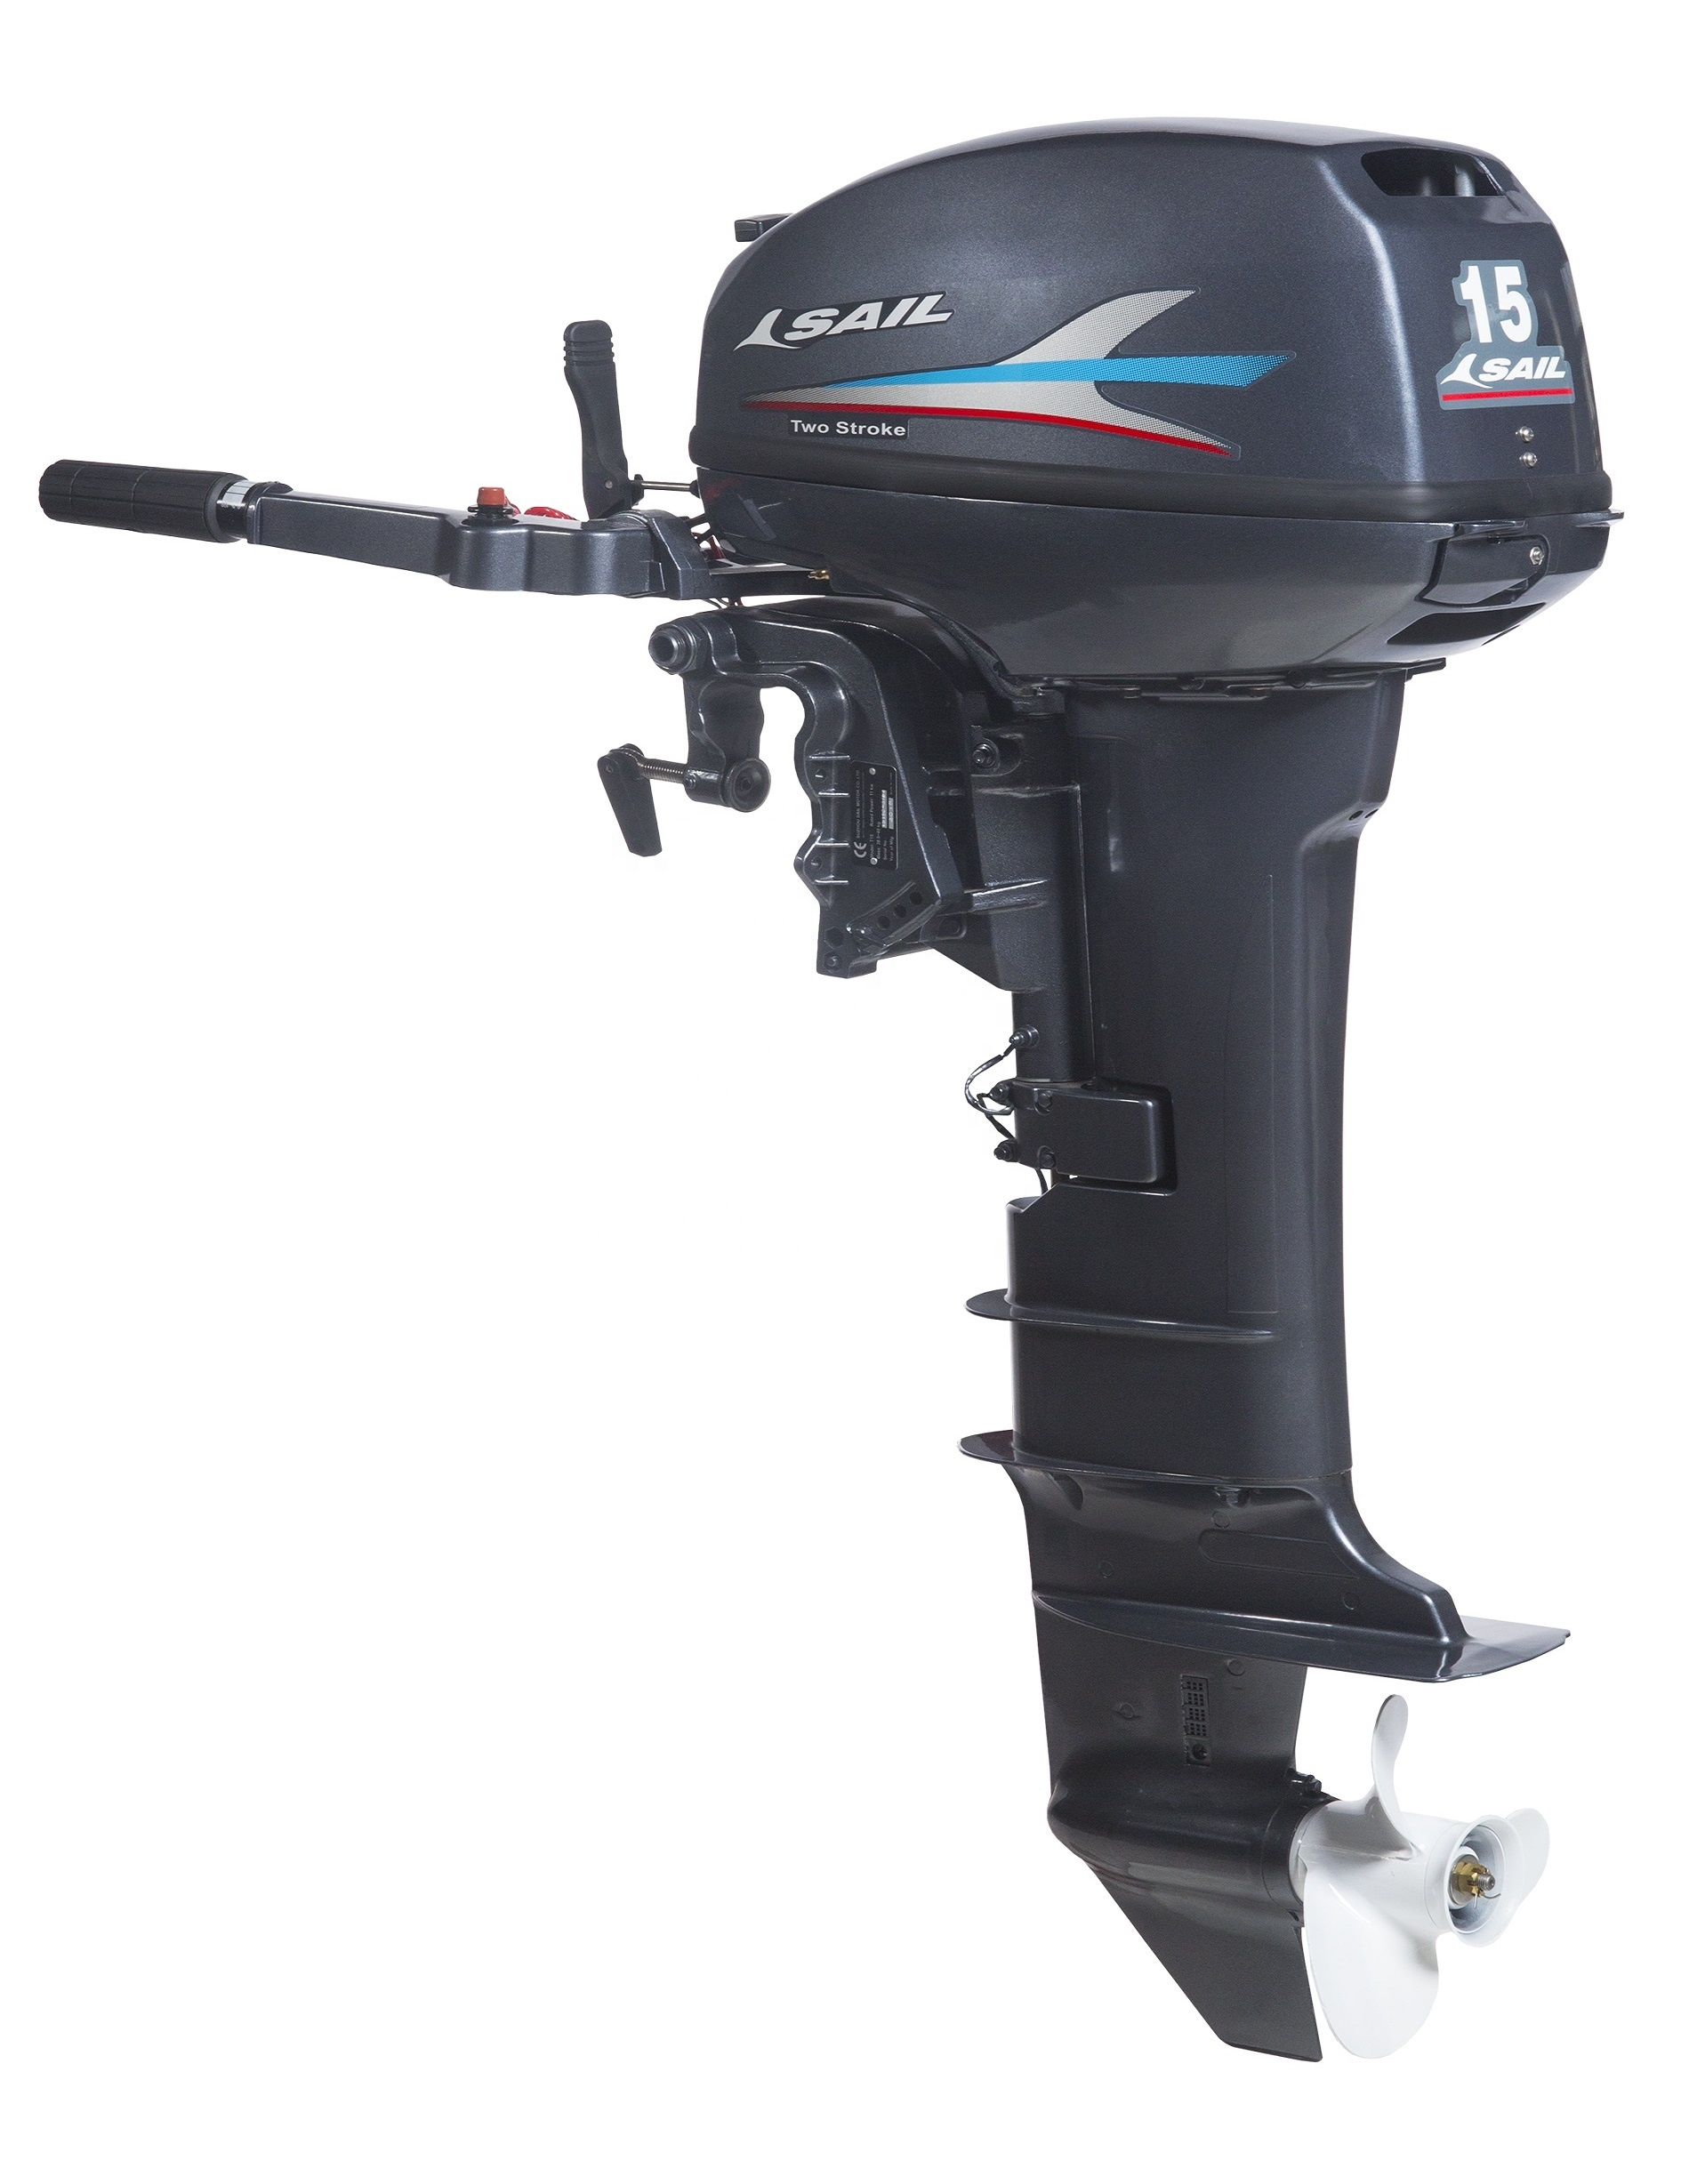 SAIL 2 stroke 9.9hp and 2 stroke 15hp outboard engine